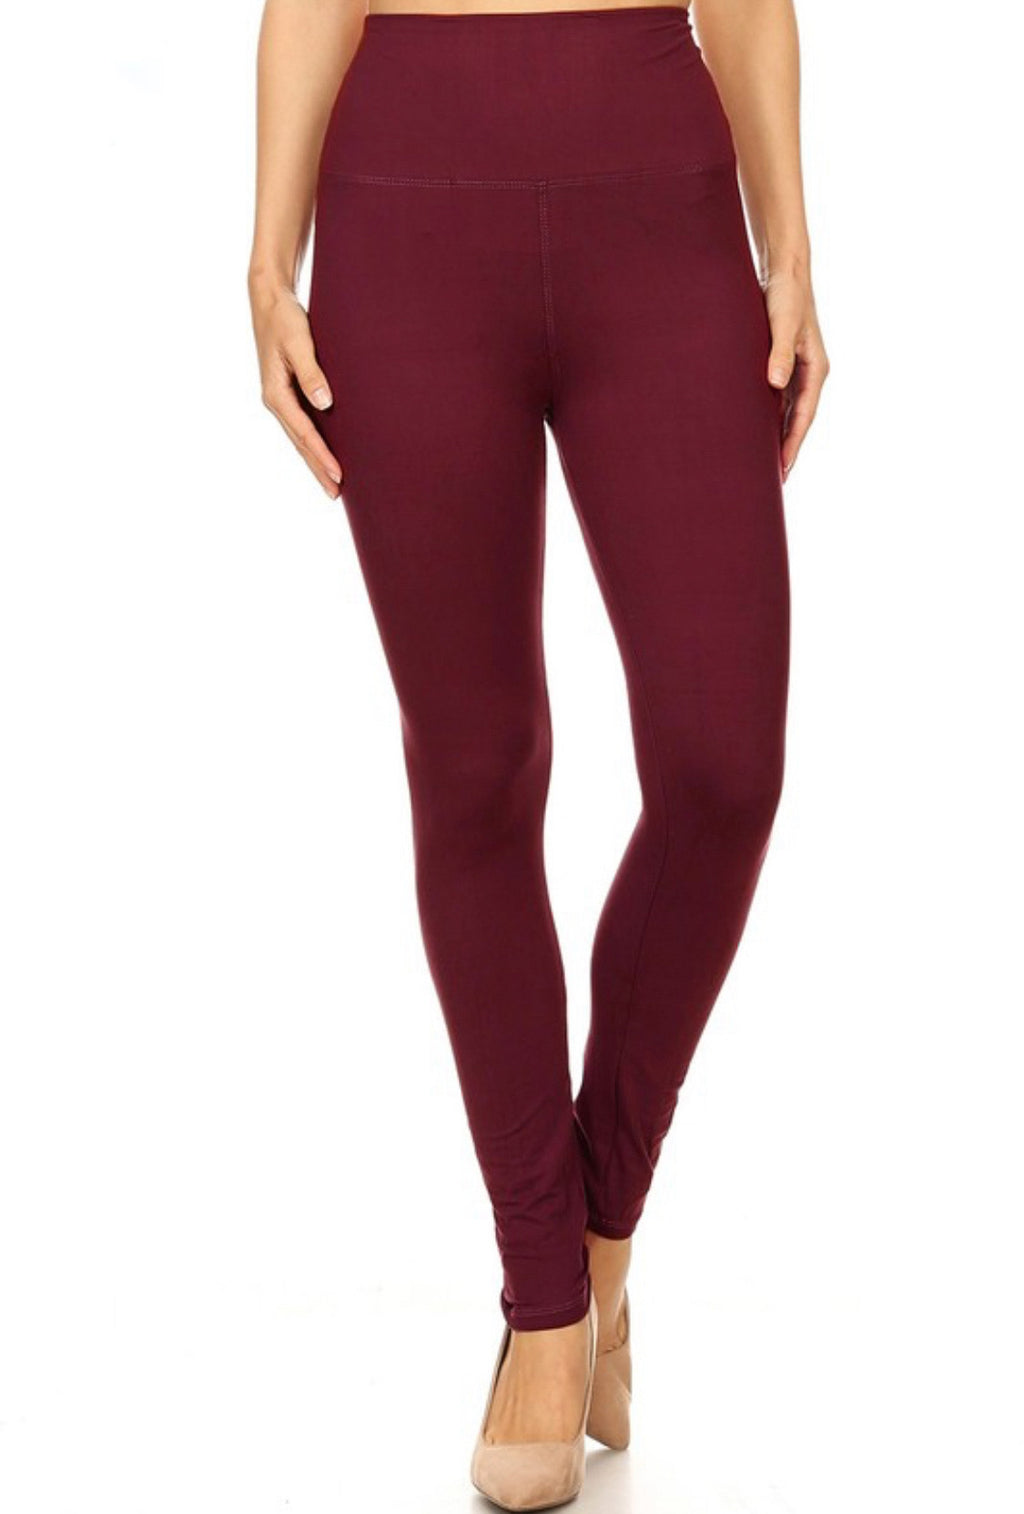 High Waist Extra Wide Band Leggings One Size